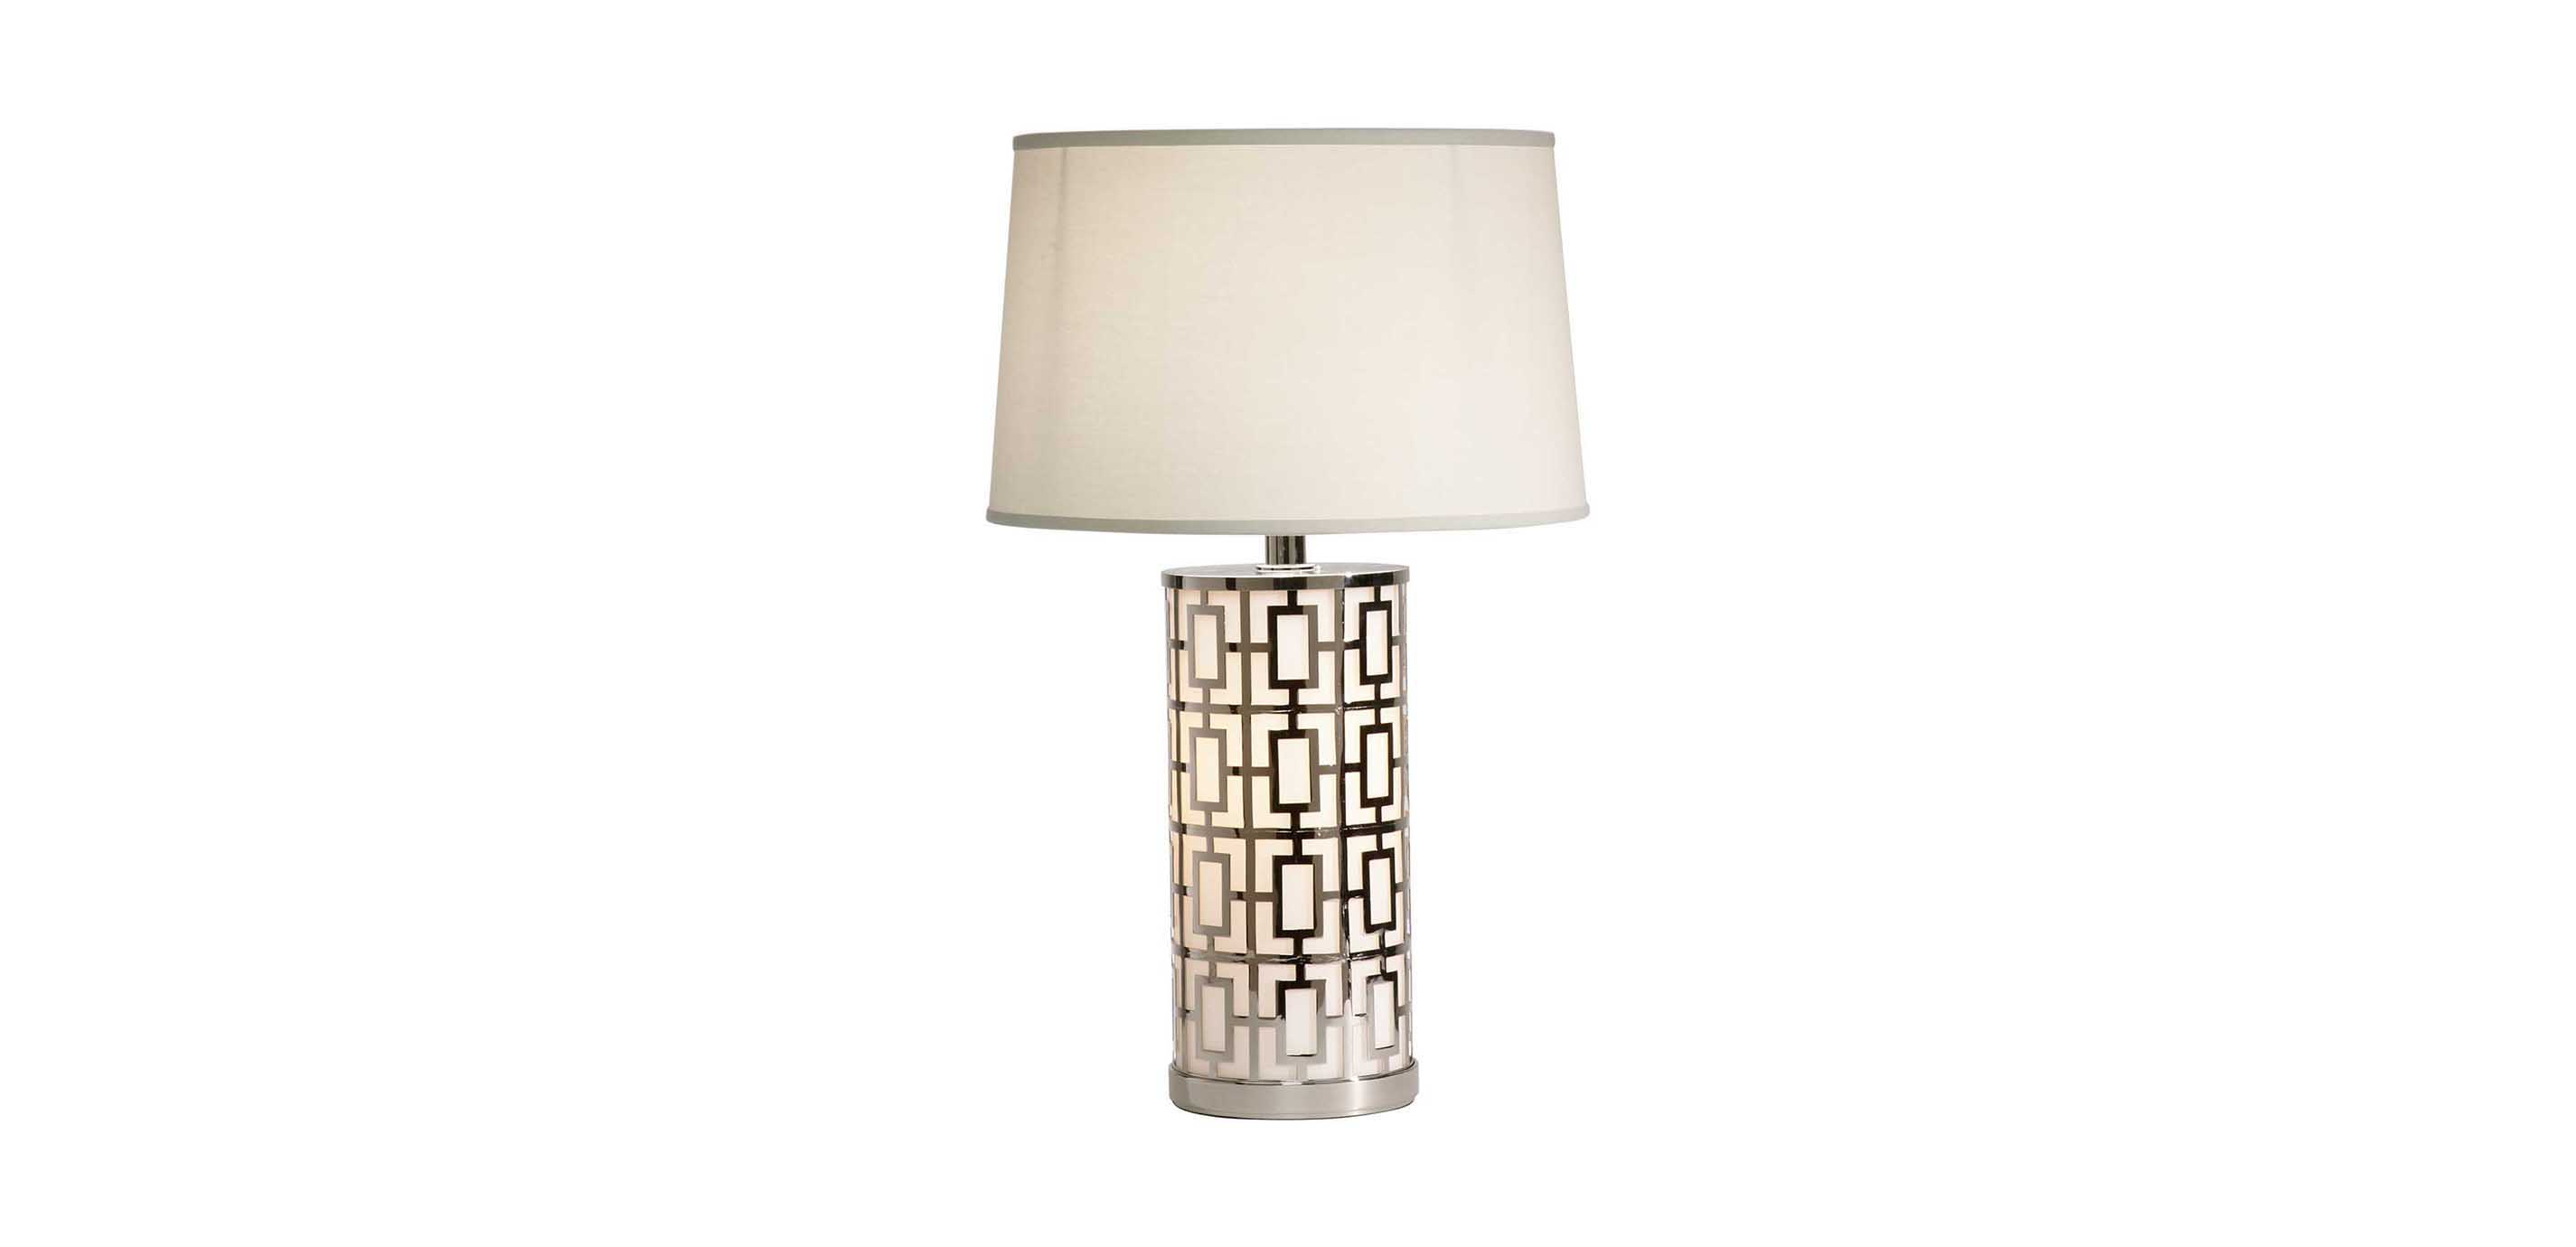 Images null & Geo Symmetric Table Lamp | TABLE LAMPS | Ethan Allen